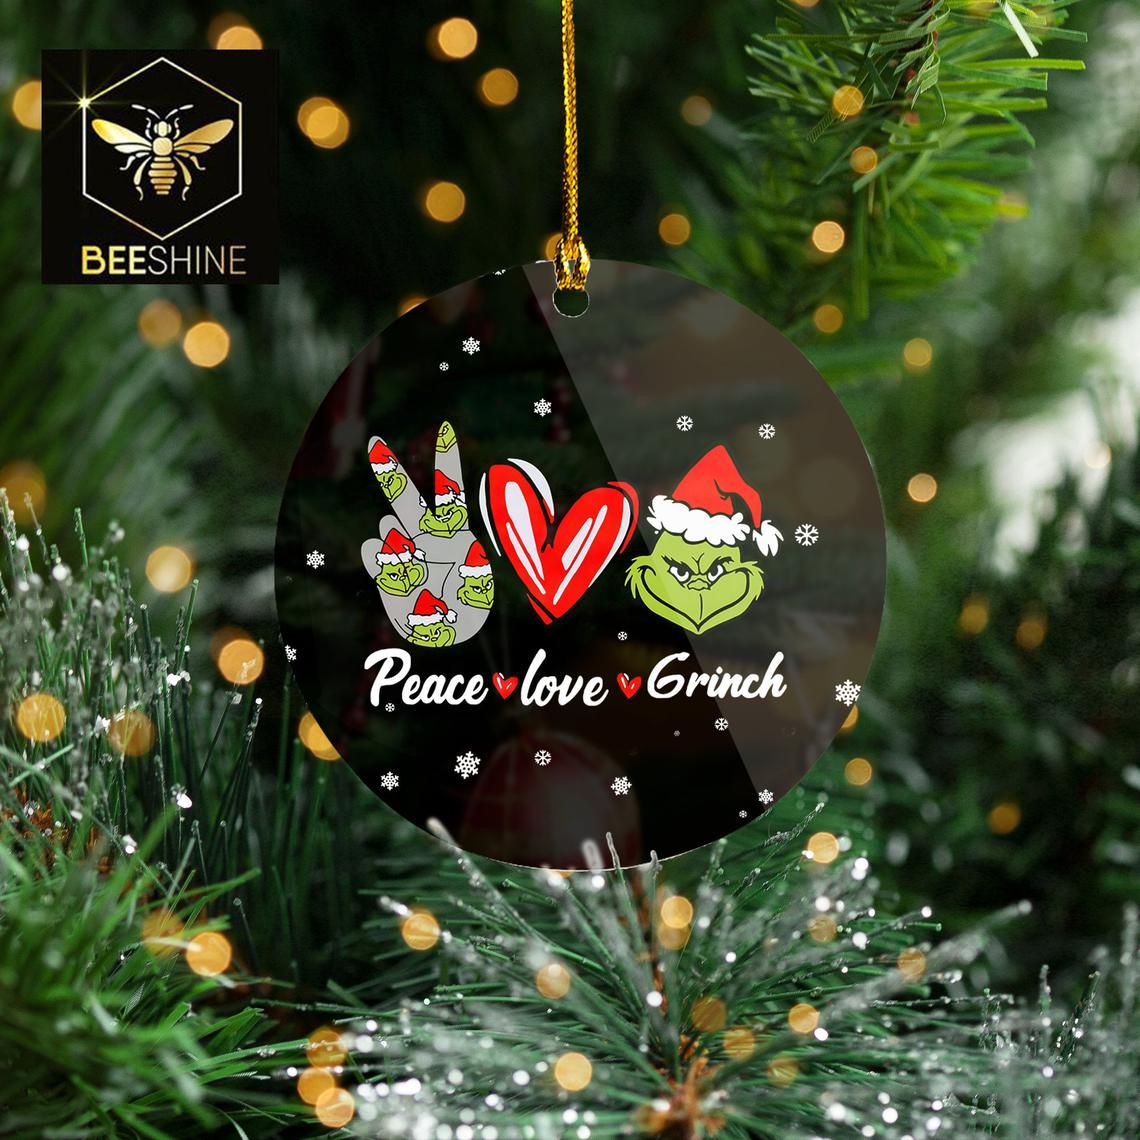 Grinch Christmas  2020 Peace Love Grinch Funny Grinch Christmas